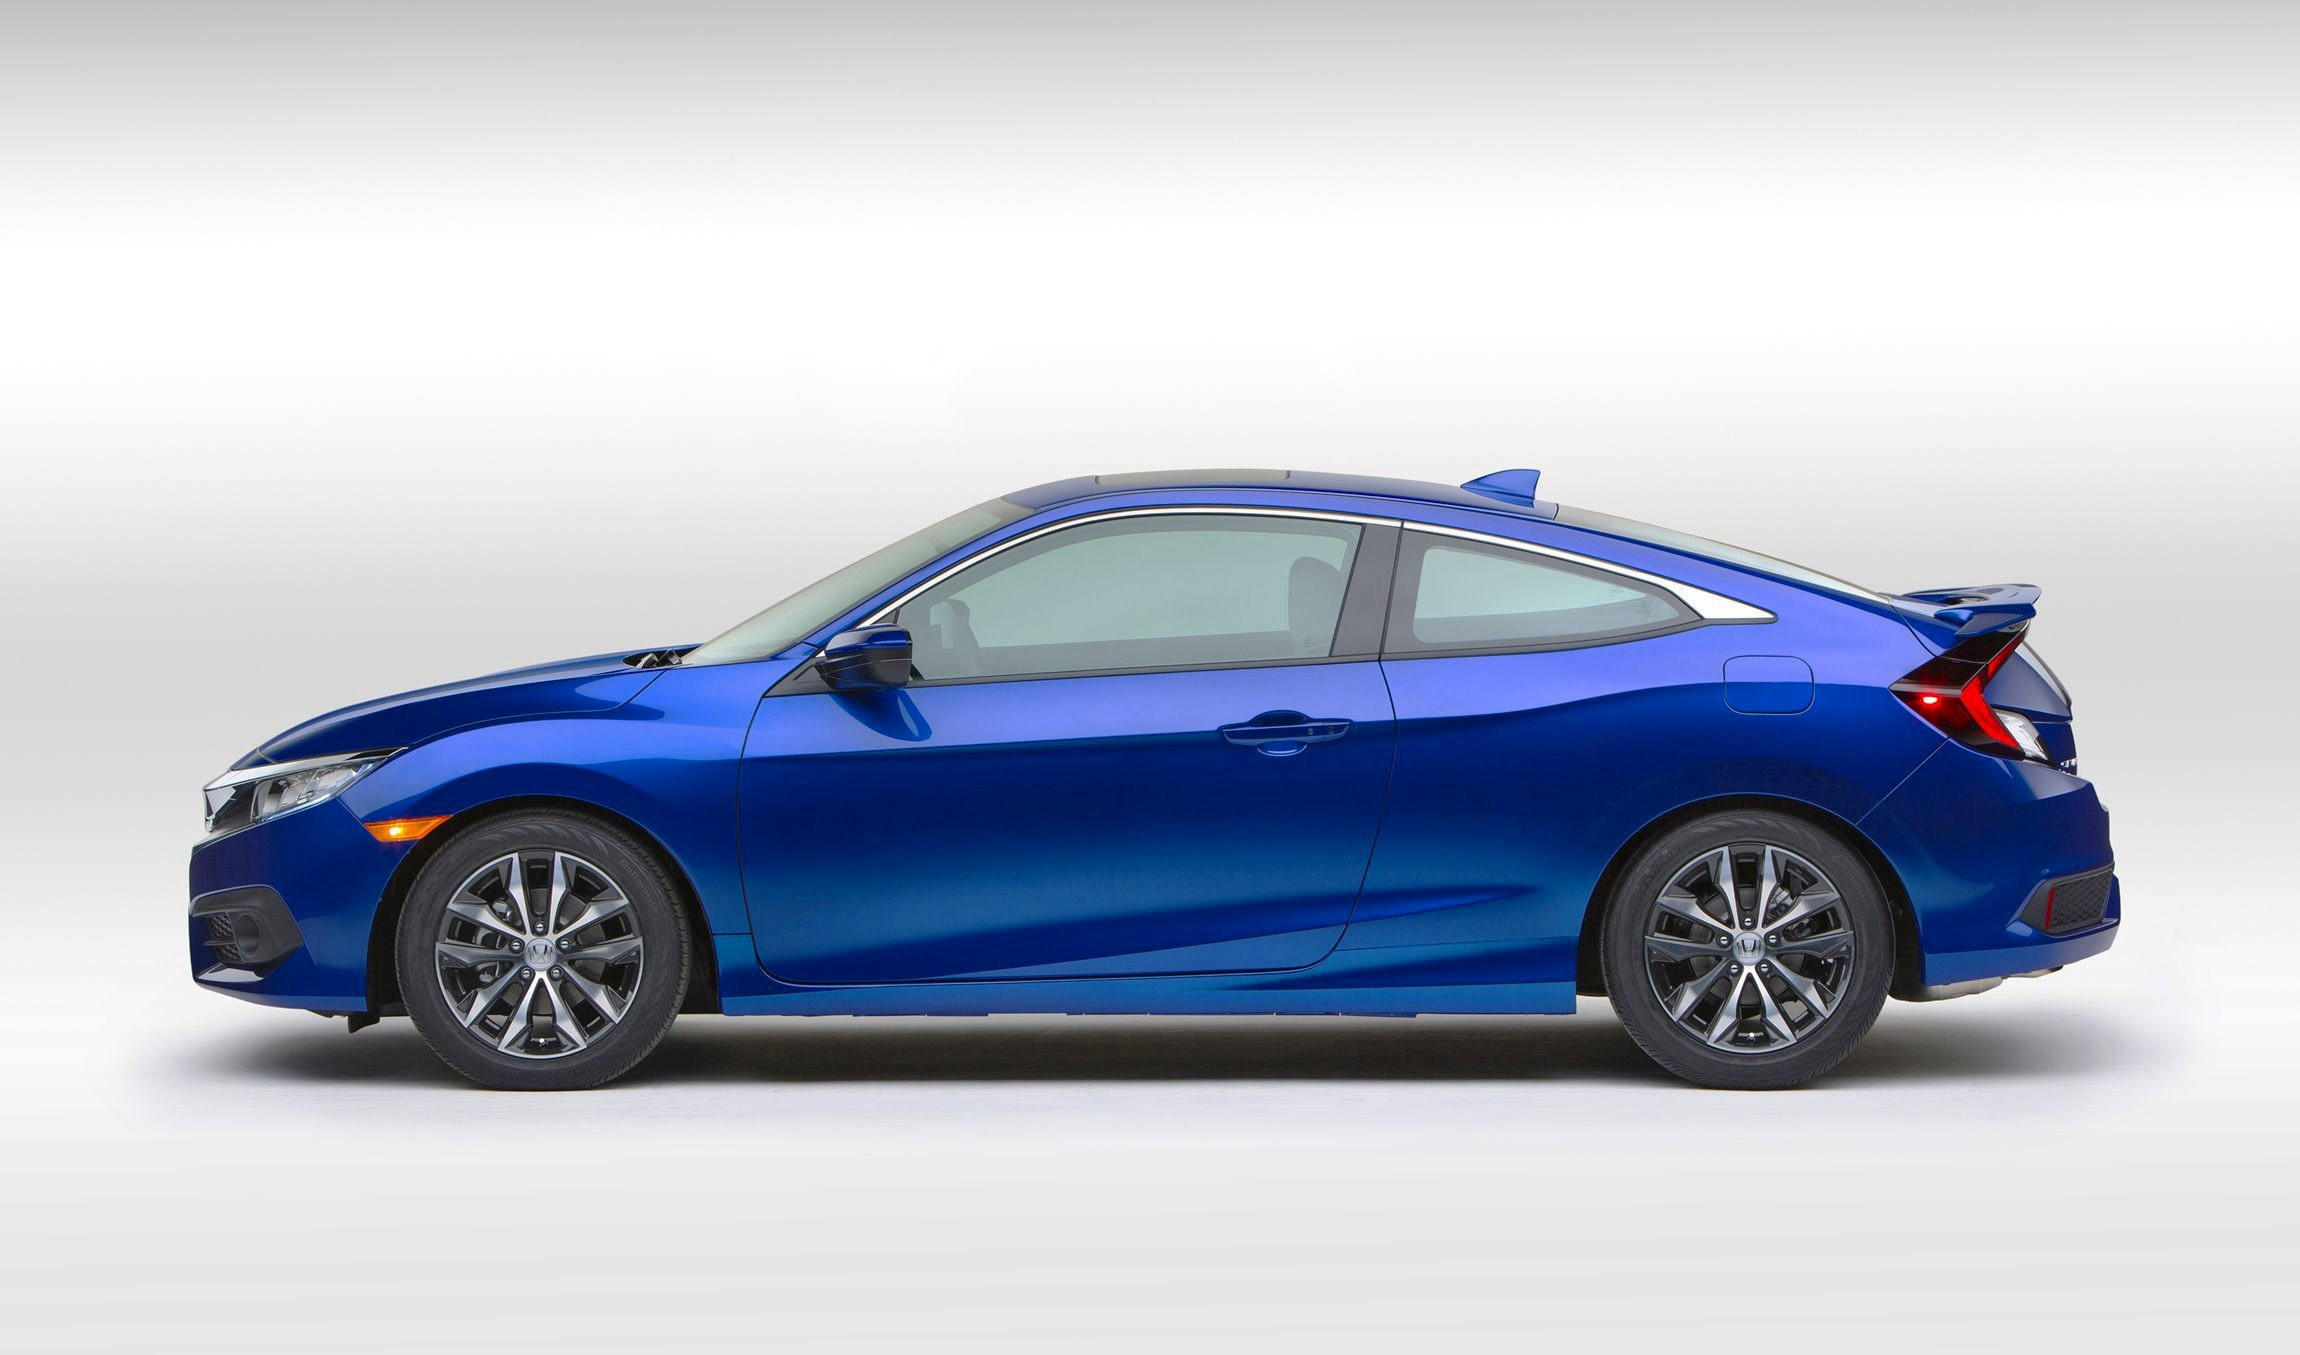 Los Angeles Auto Show 2017 >> 2016 Honda CIVIC Coupe Reveal - Big Style, Power from ...